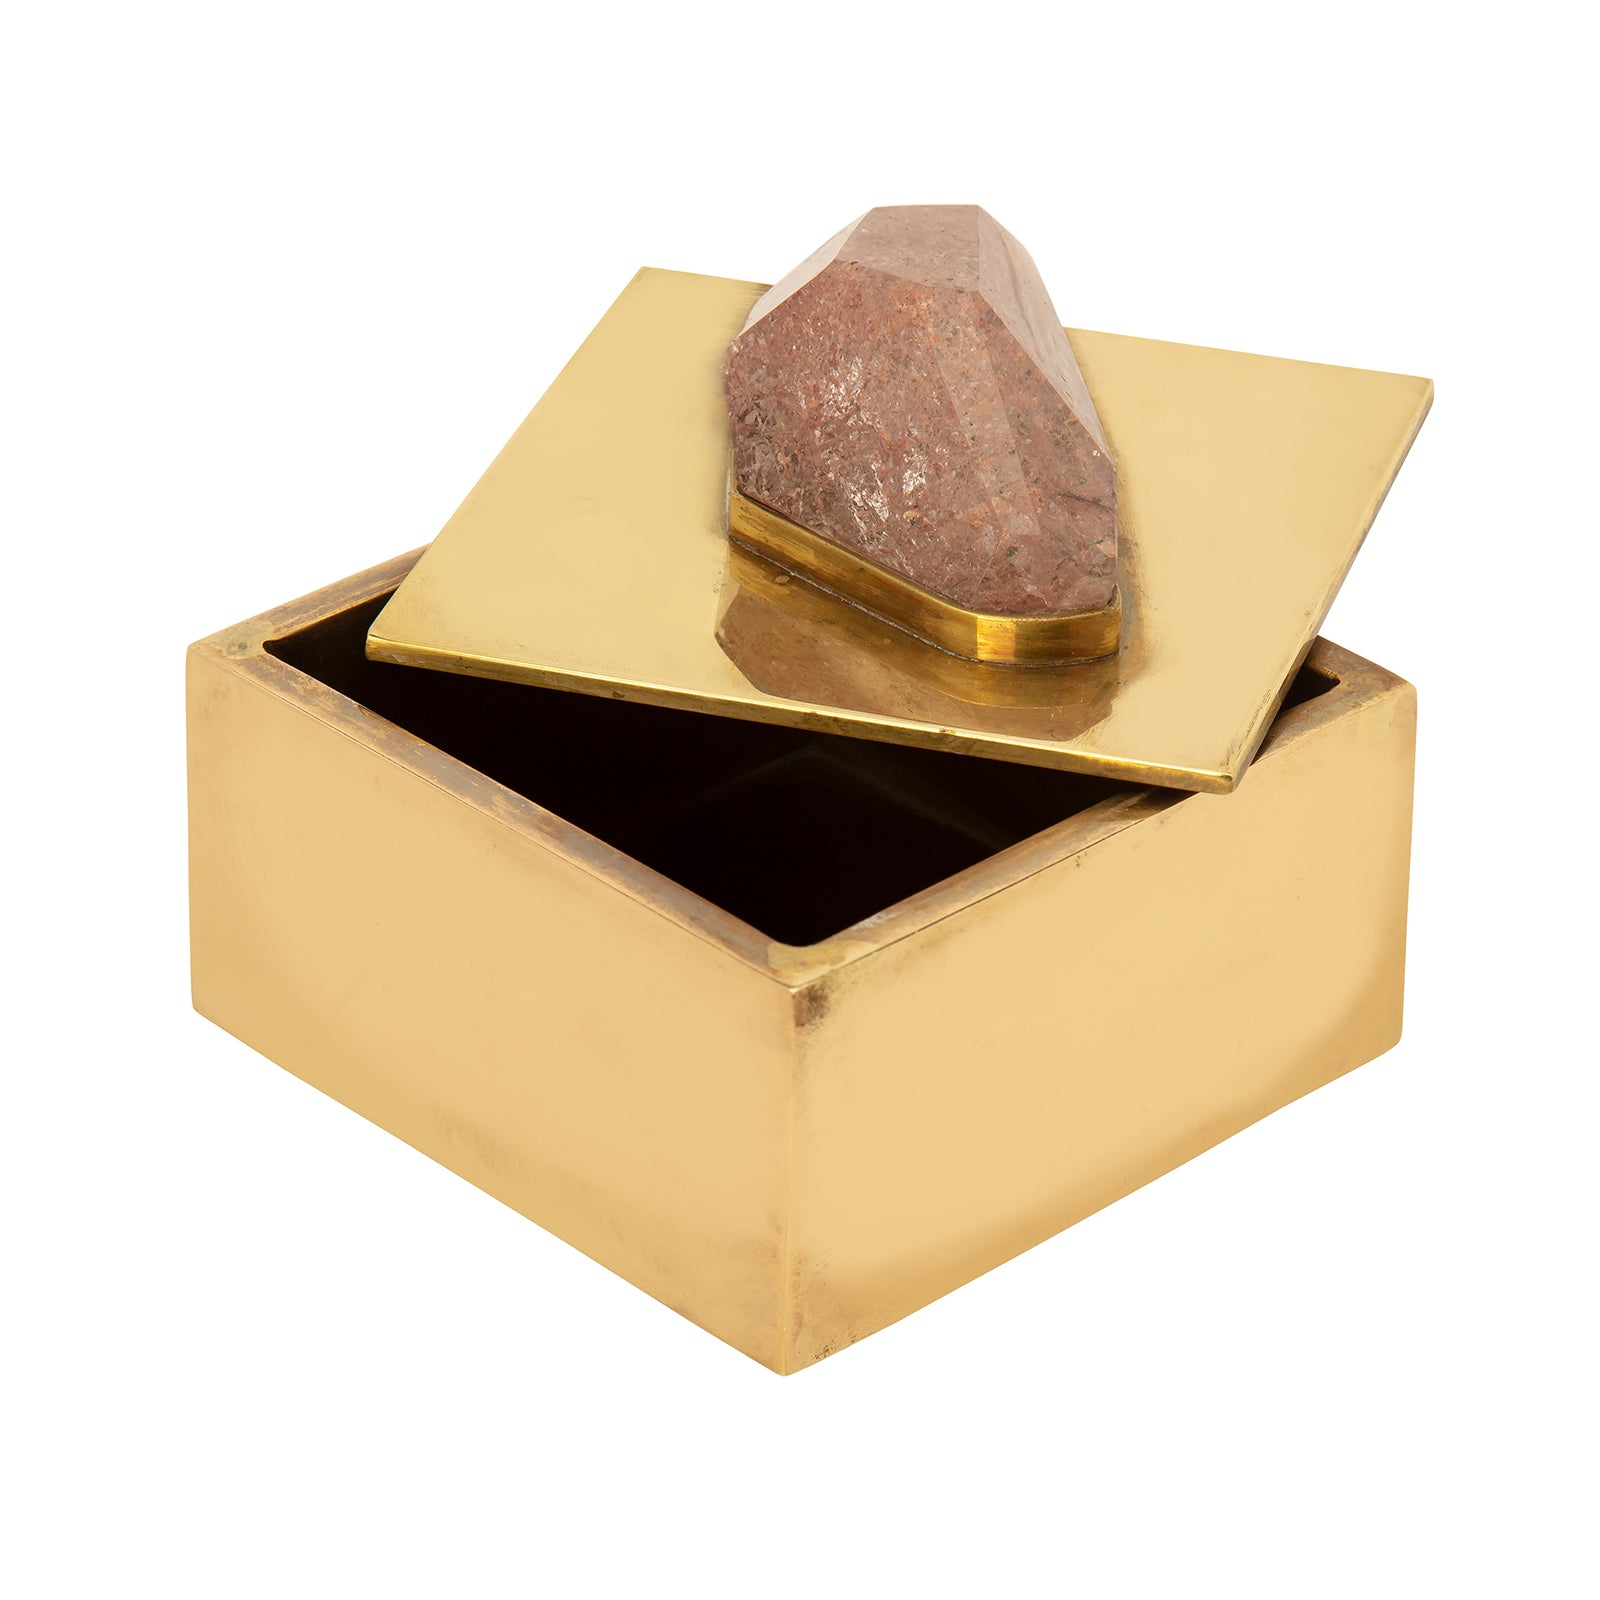 Broken English Home Small Brass & Crushed Stone Box - Home & Decor - Broken English Jewelry